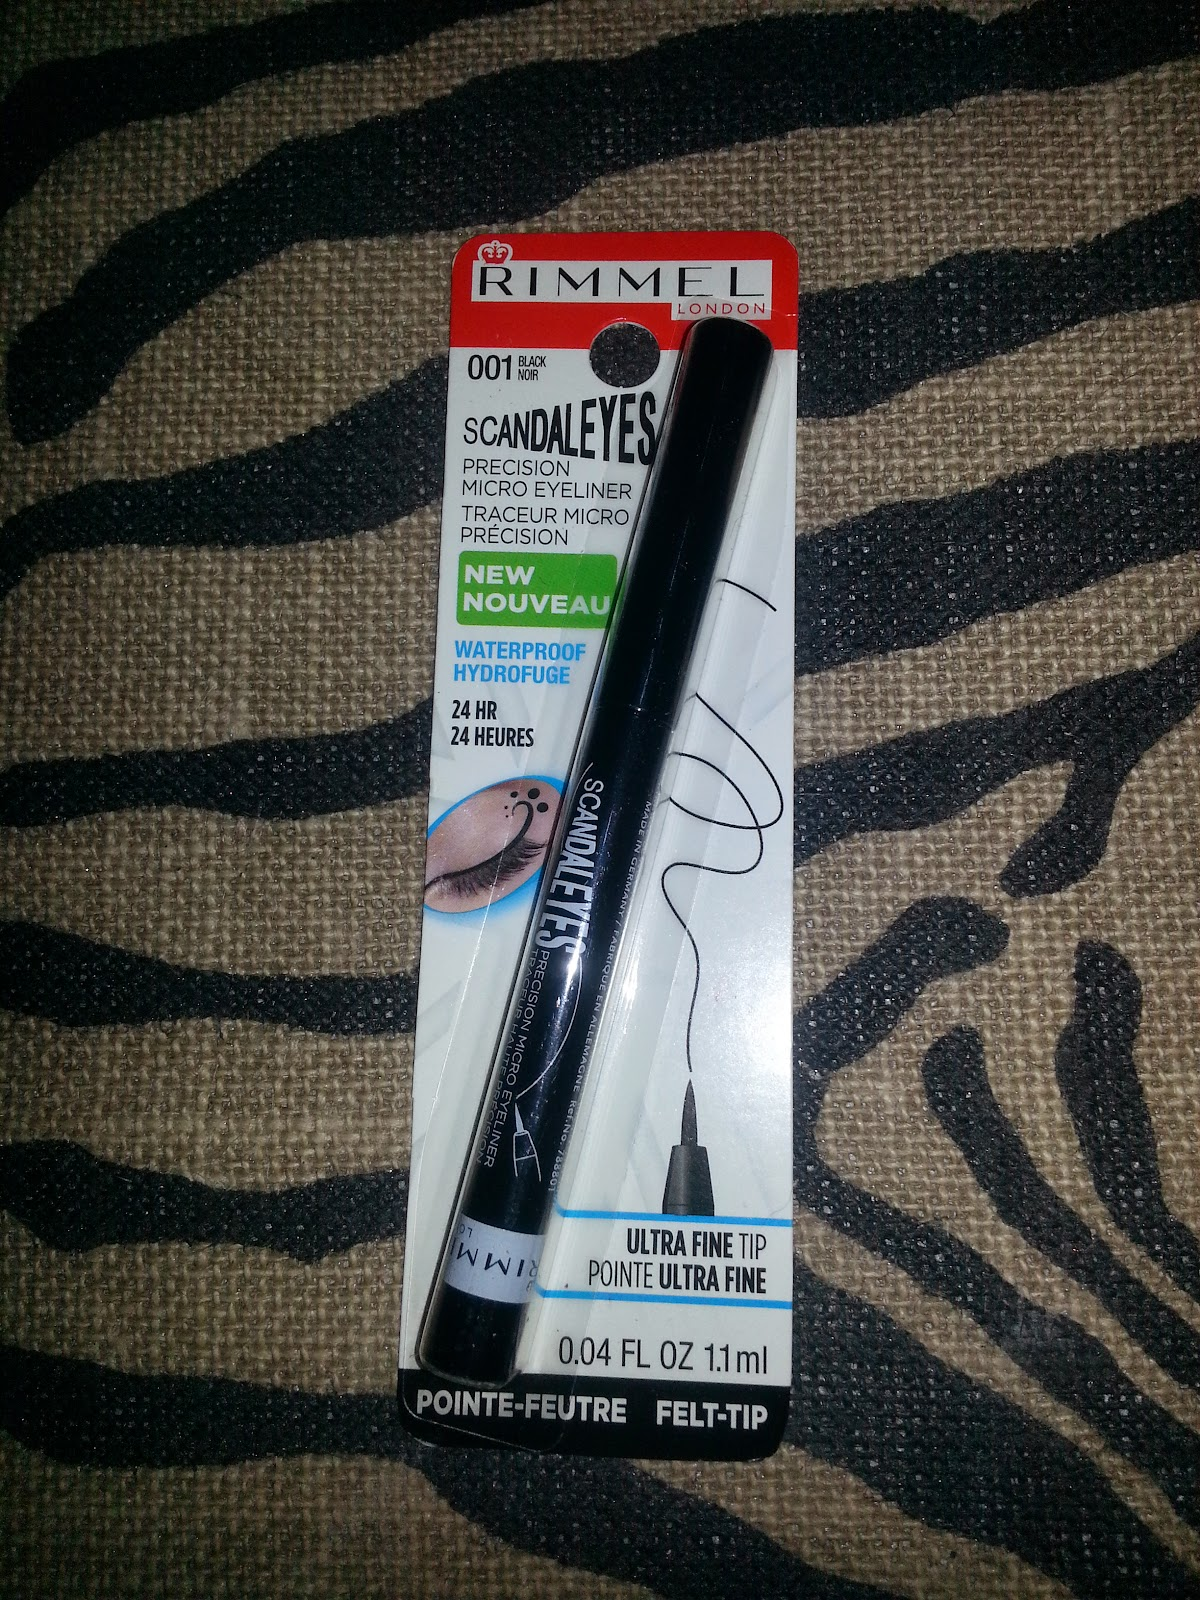 7b47779434a Here is what is said about this felt tip eyeliner on the Rimmel site: